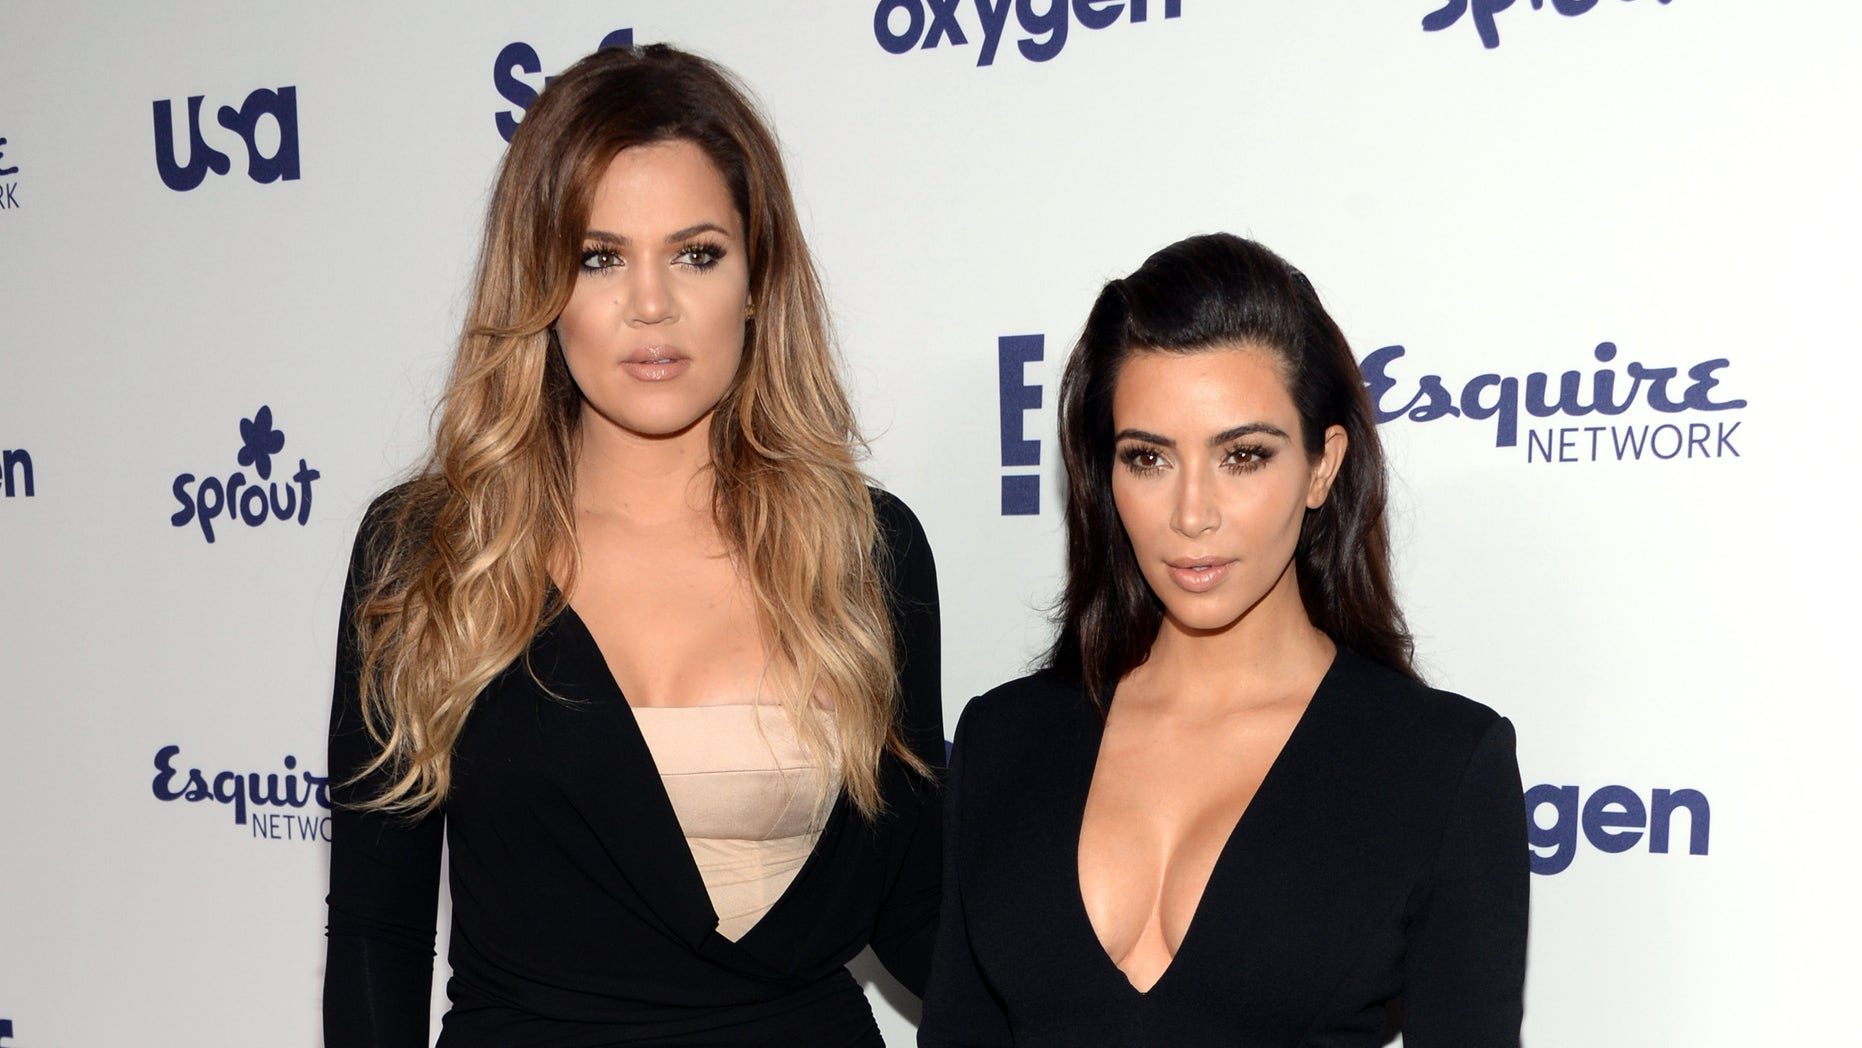 May 15, 2014. Khloe Kardashian, left, and Kim Kardashian arrive at the NBCUniversal Cable Entertainment 2014 Upfront at the Javits Center in New York.